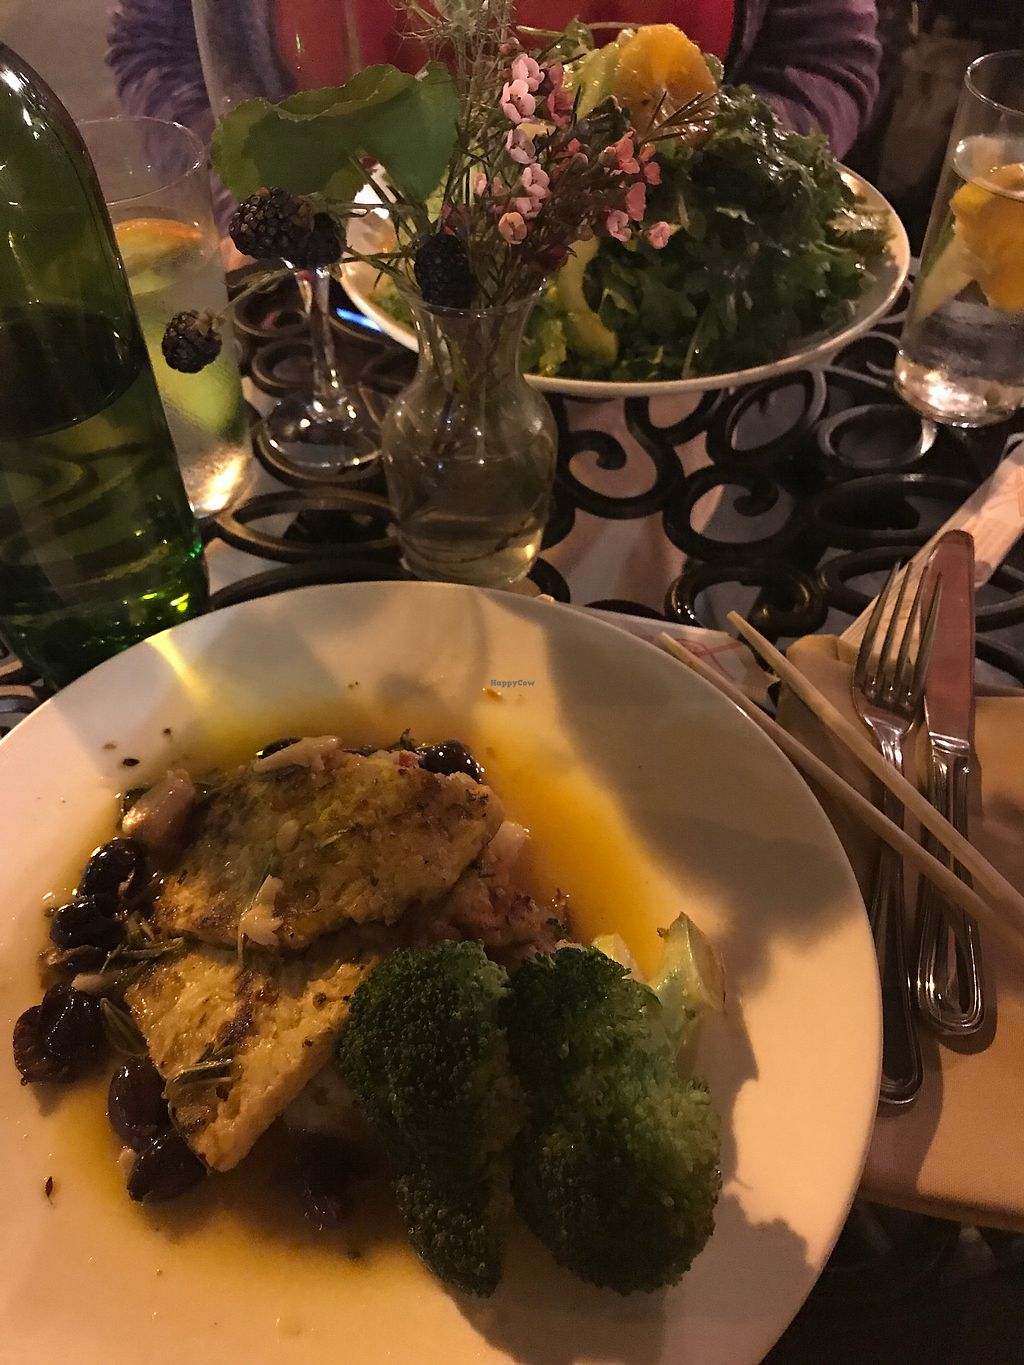 "Photo of Plum Bistro  by <a href=""/members/profile/OliviaLimone"">OliviaLimone</a> <br/>Tempeh Vermouth (front) & kale salad (back)  <br/> August 12, 2017  - <a href='/contact/abuse/image/18615/291834'>Report</a>"